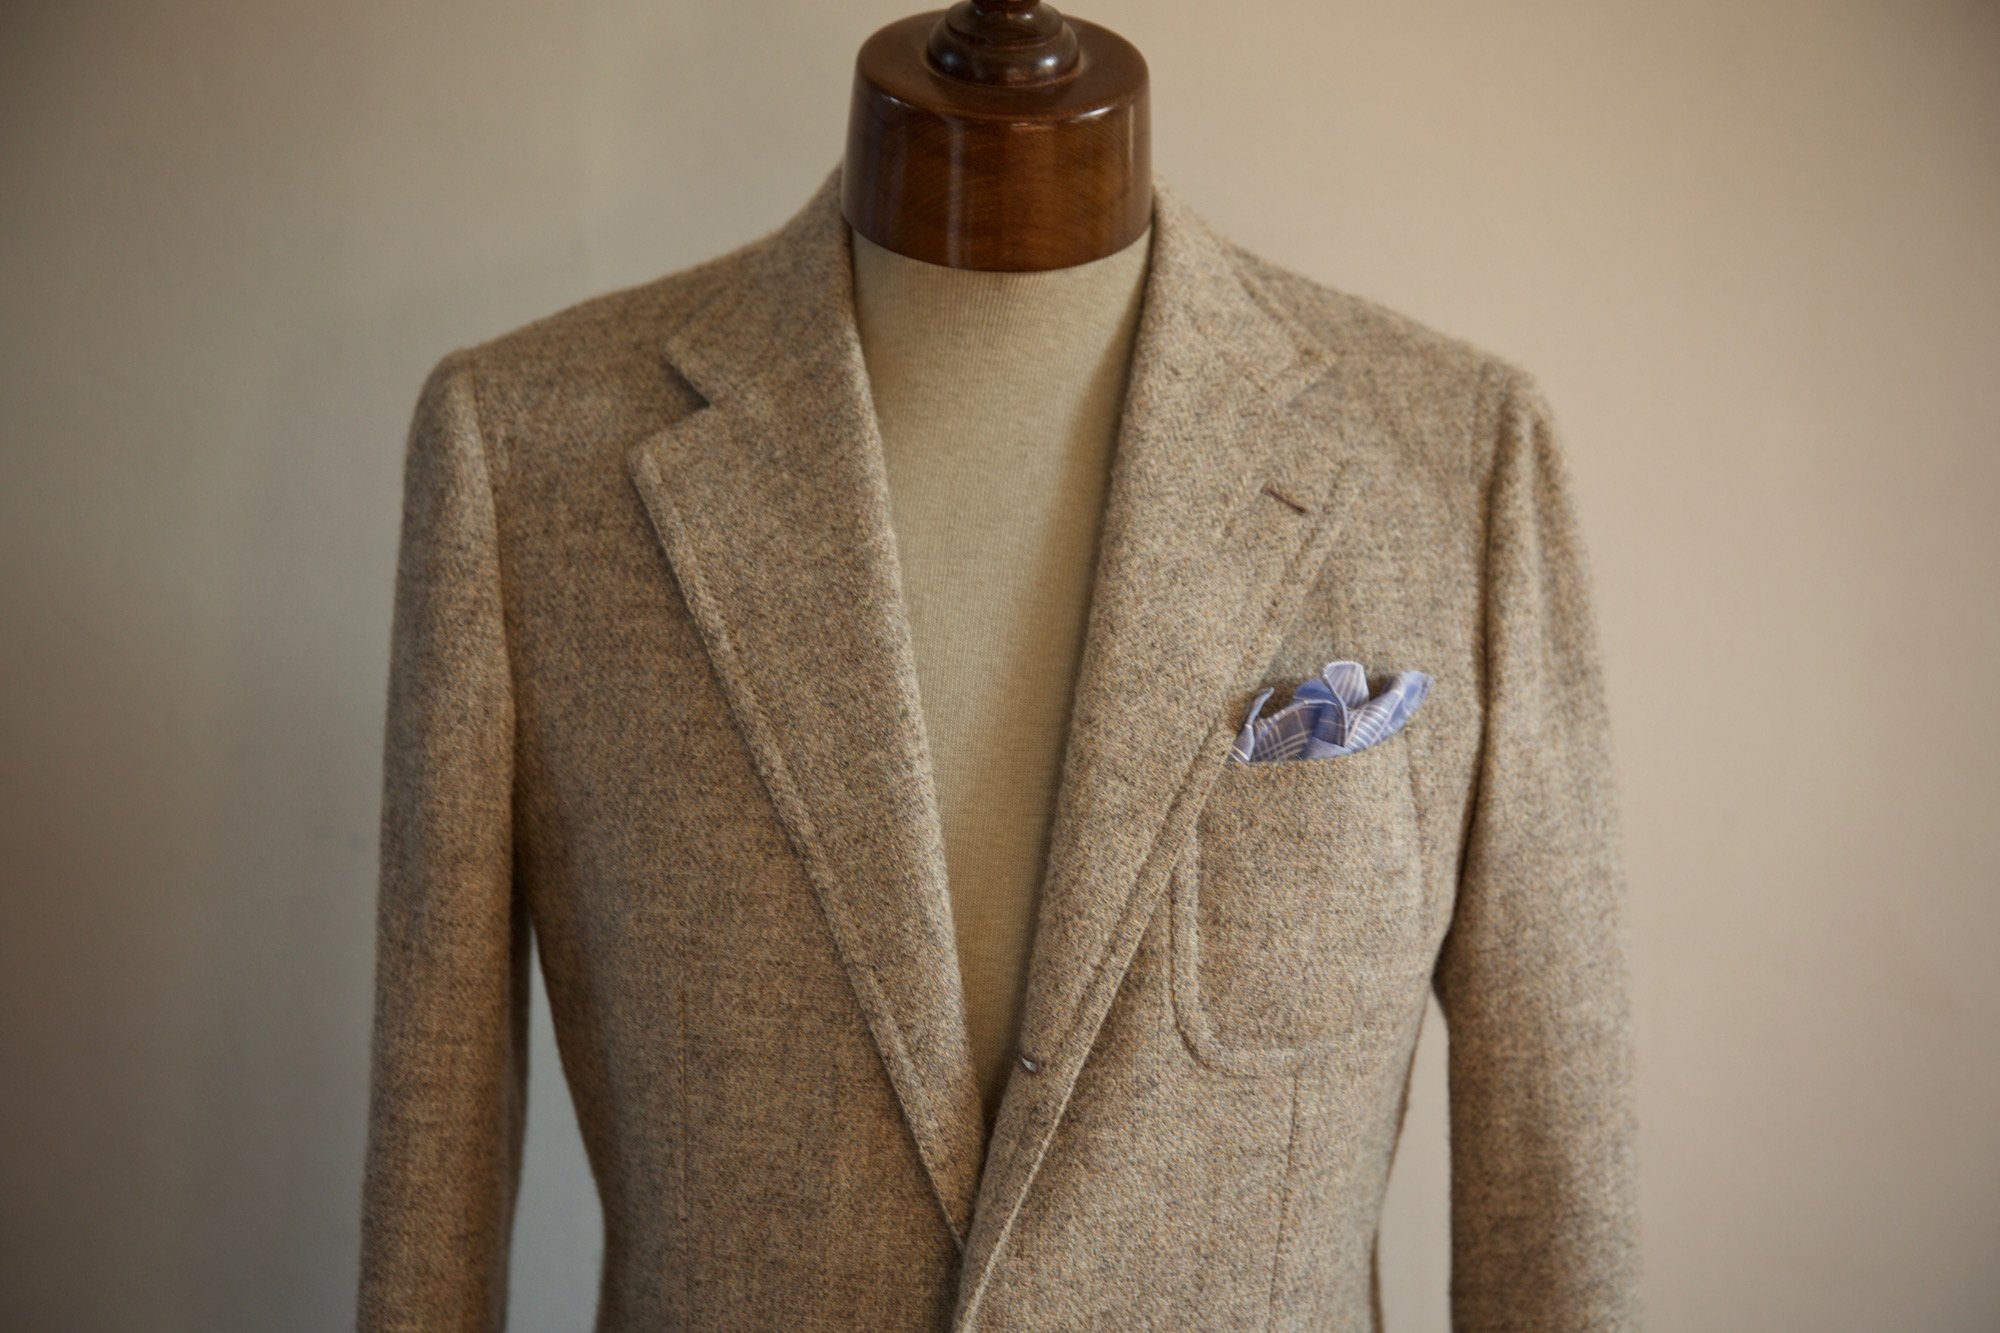 How wide should my jacket lapels be? – Permanent Style